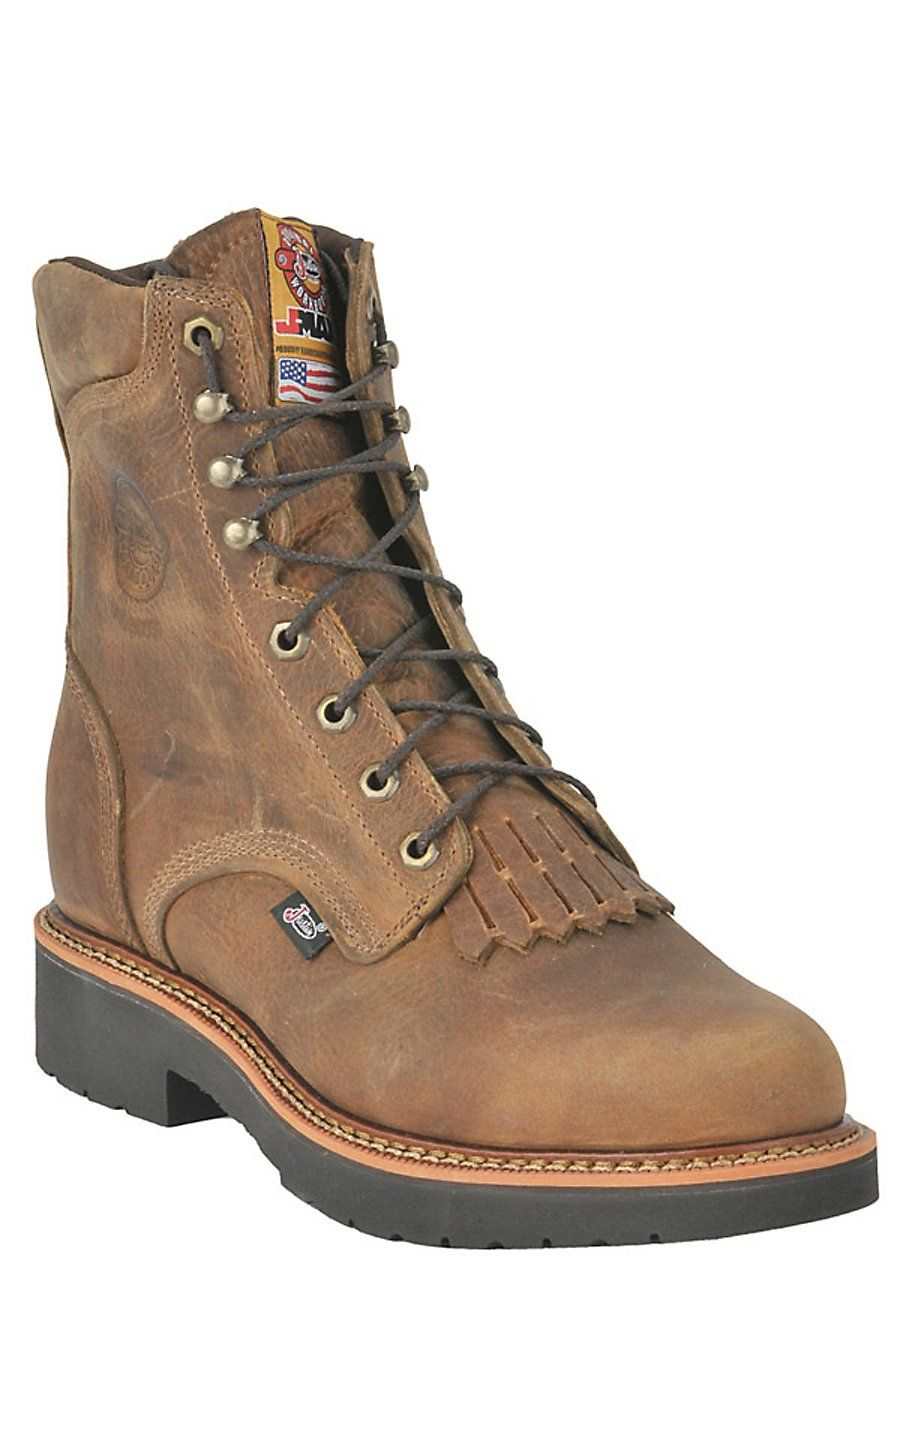 Justin leather work gloves - Justin Men S 8 Rugged Tan J Max Steel Toe Lacer Work Boot